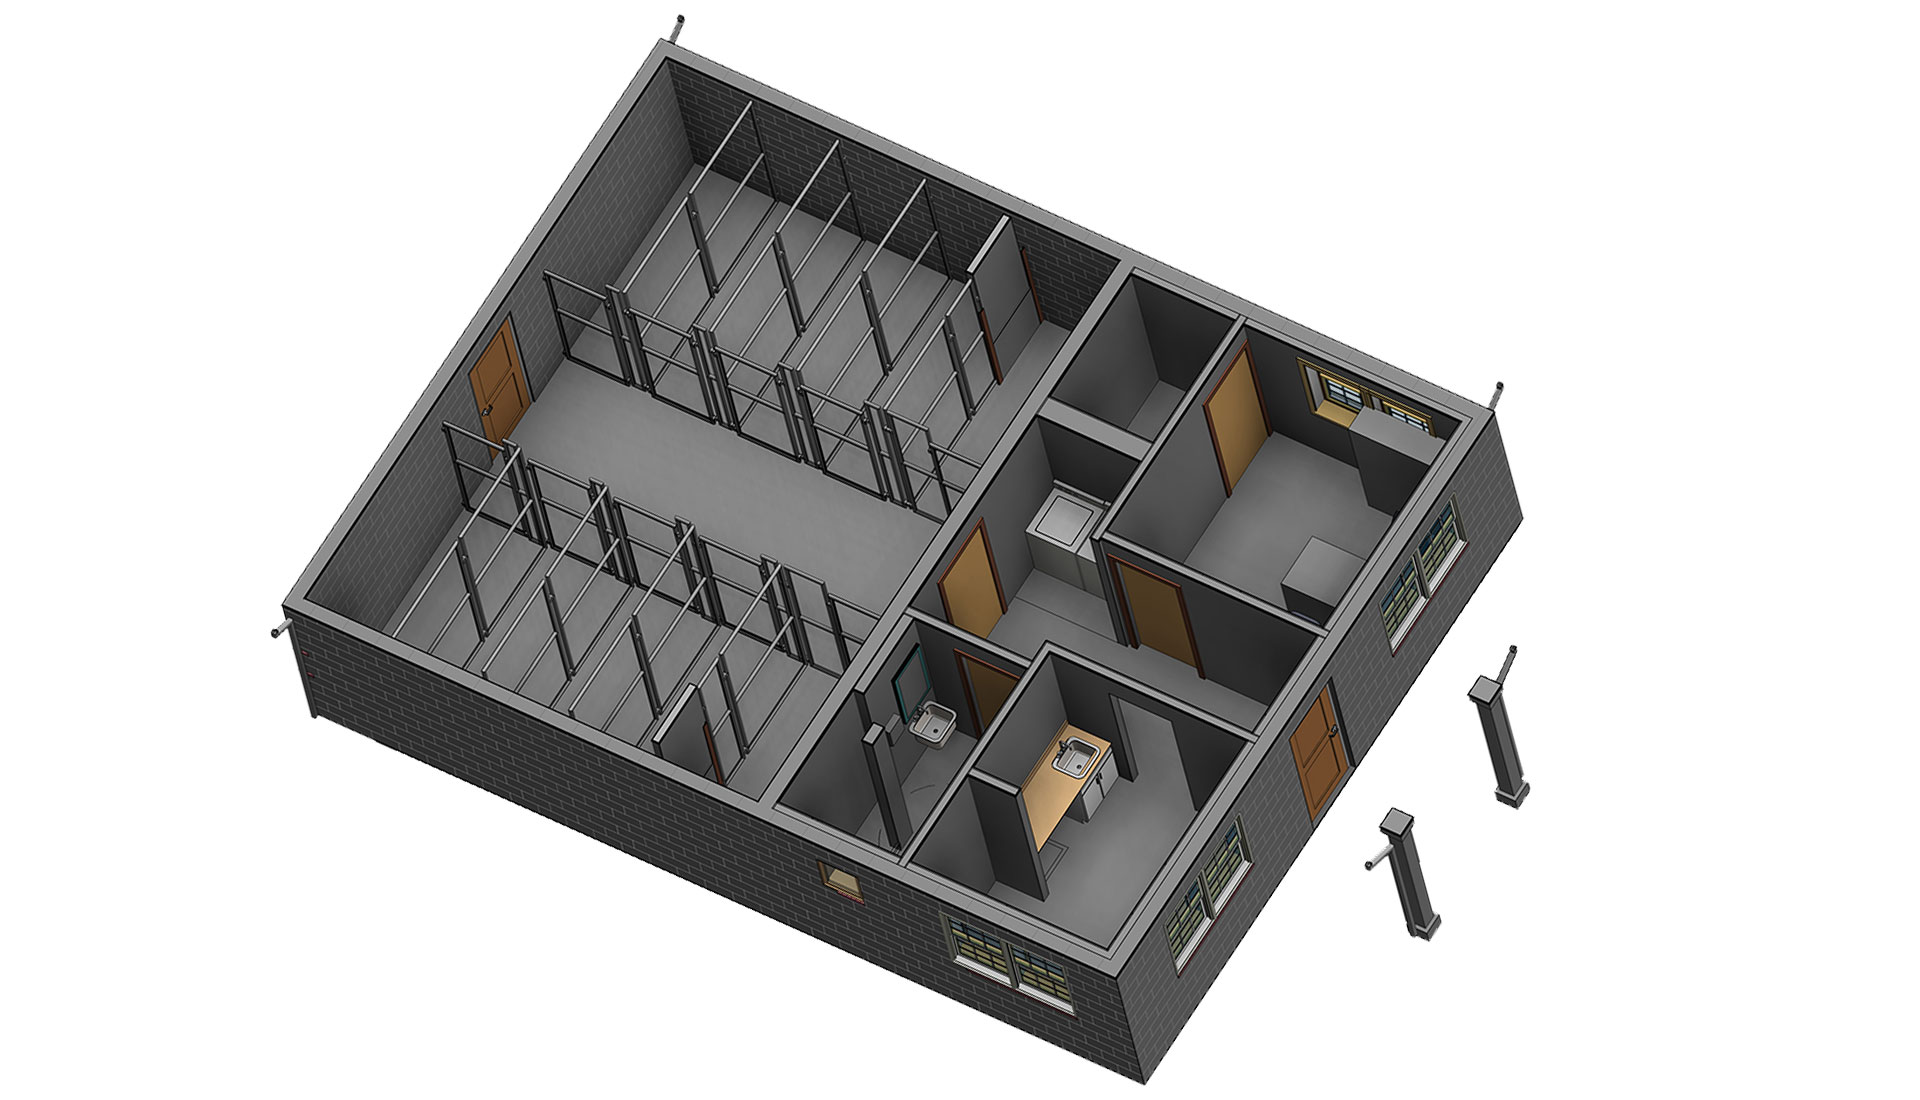 Sectional-View_Architectural-Model_Windsor-Animal_Hospital_BIM-Modeling-Project-by-United-BIM